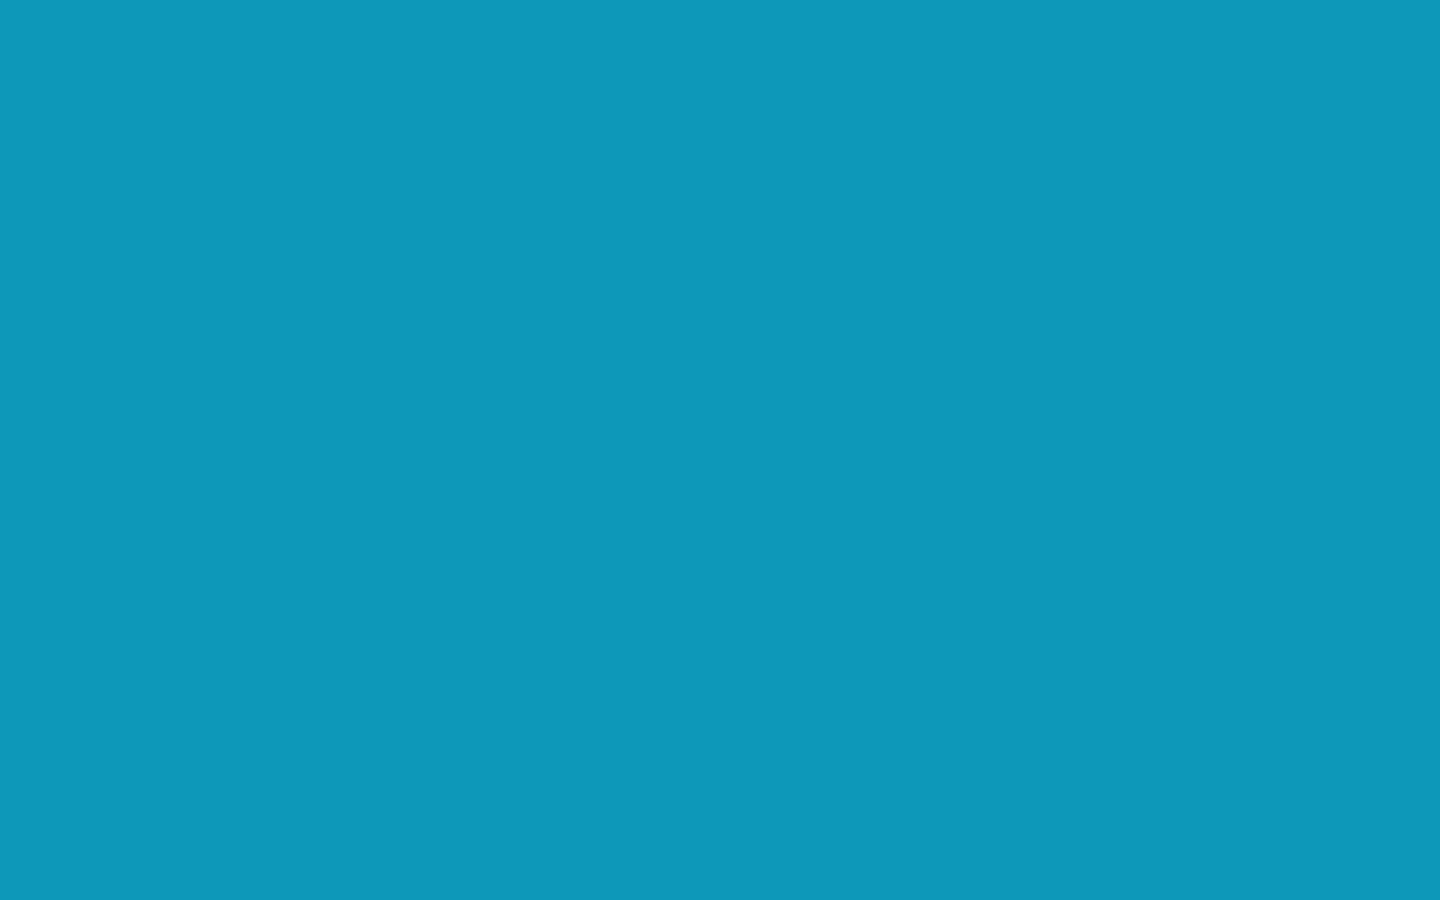 1440x900 Blue-green Solid Color Background